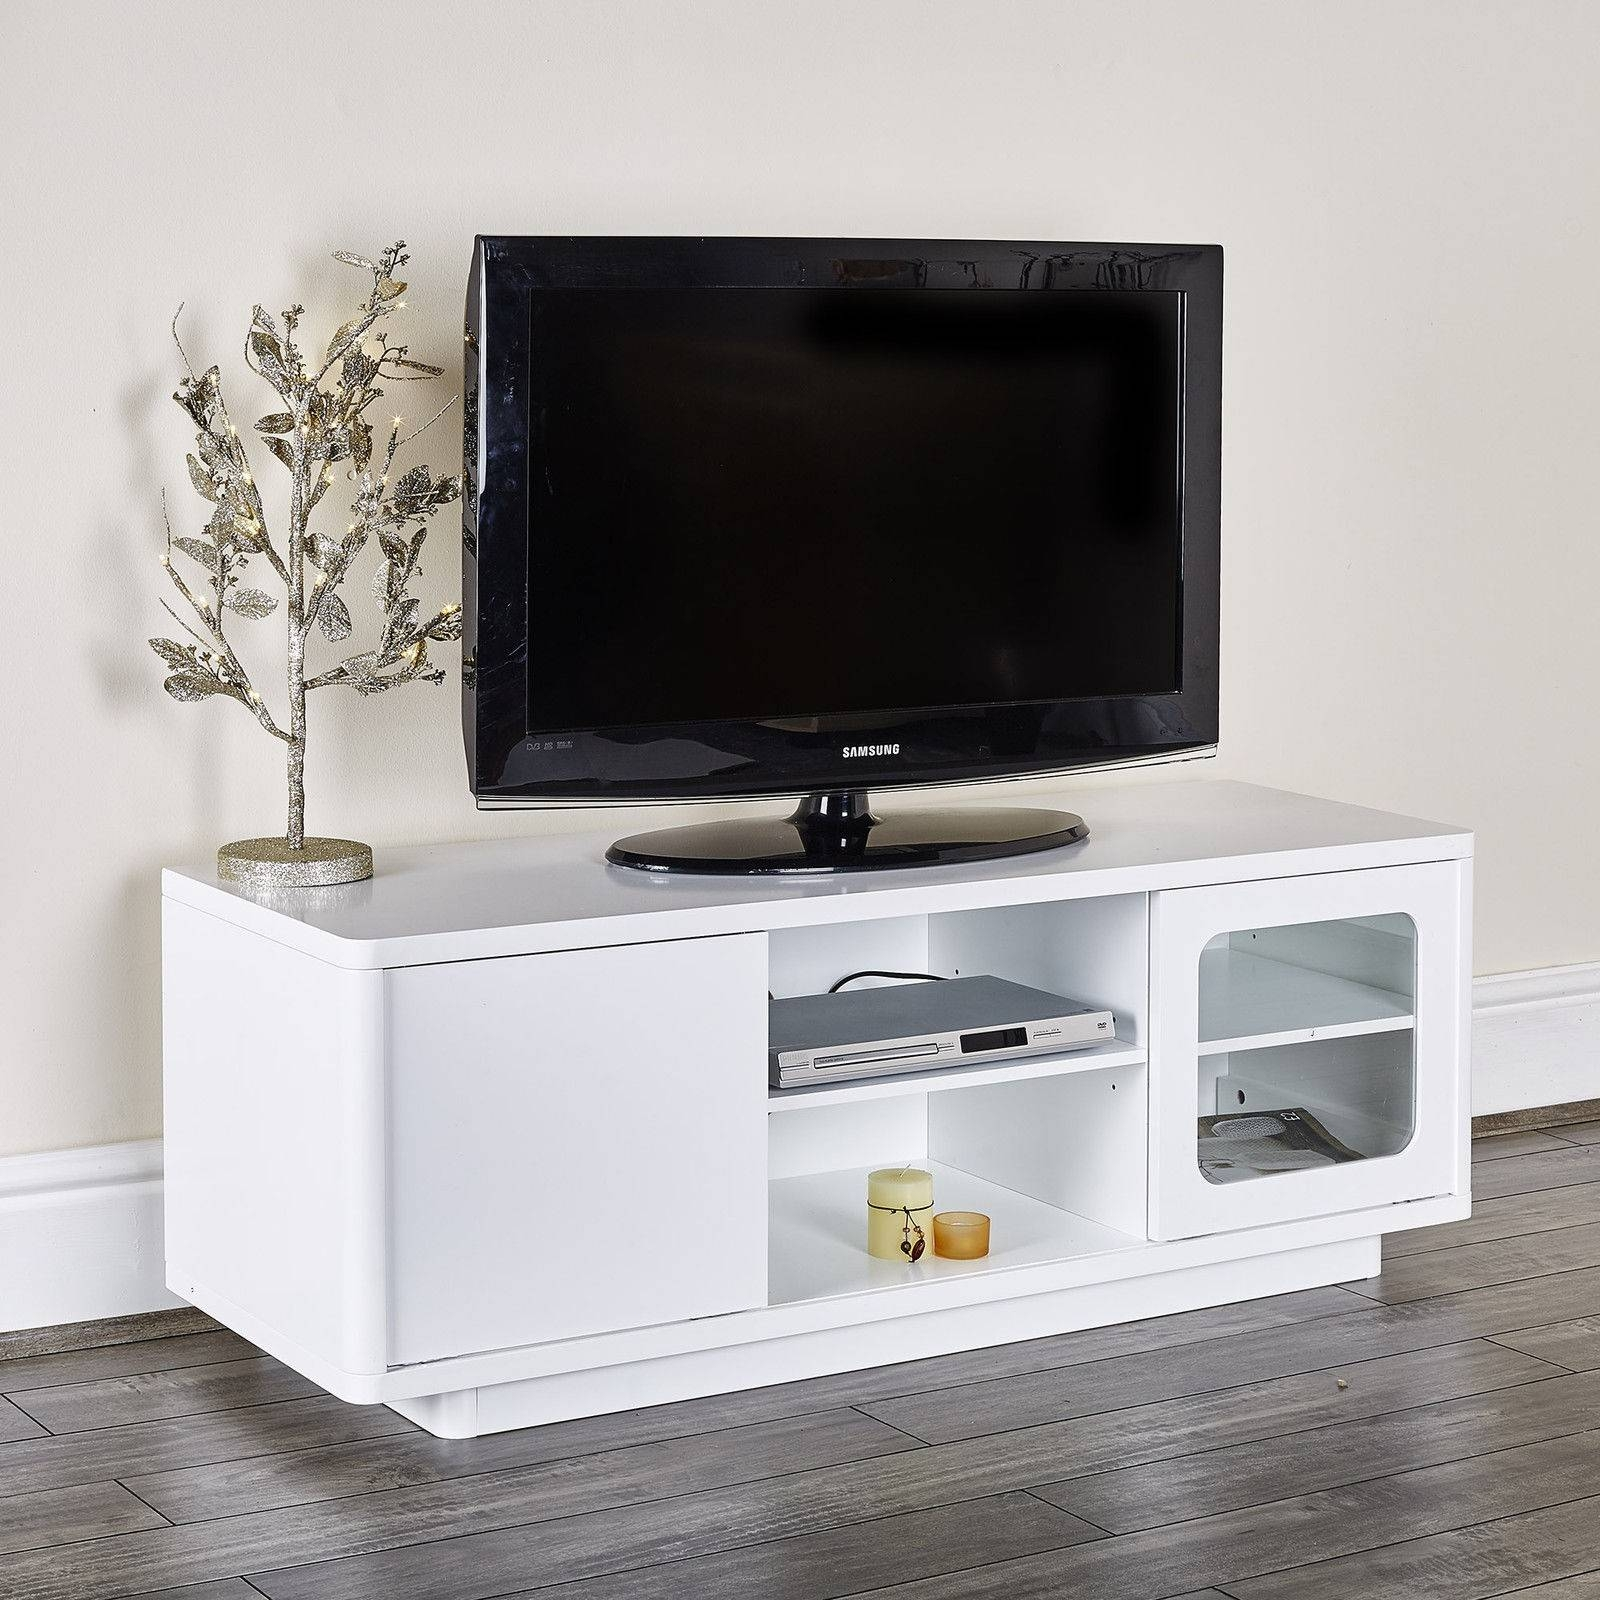 Modern White Tv Entertainment Unit Abreo Home Furniture throughout Tv Entertainment Unit (Image 4 of 15)